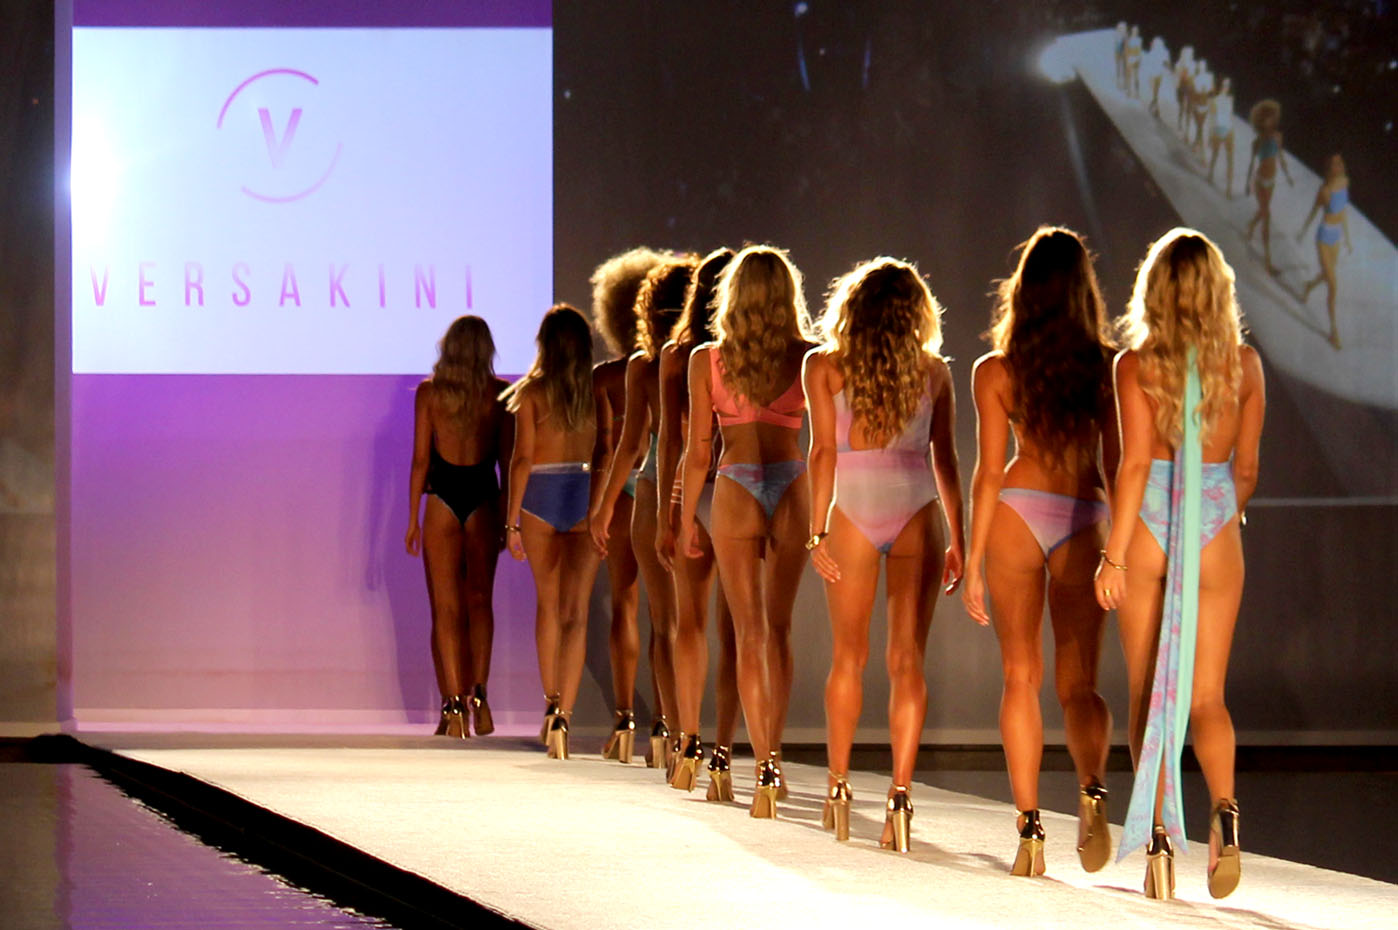 Versakini Miami Swim Week 2017 Runway Show